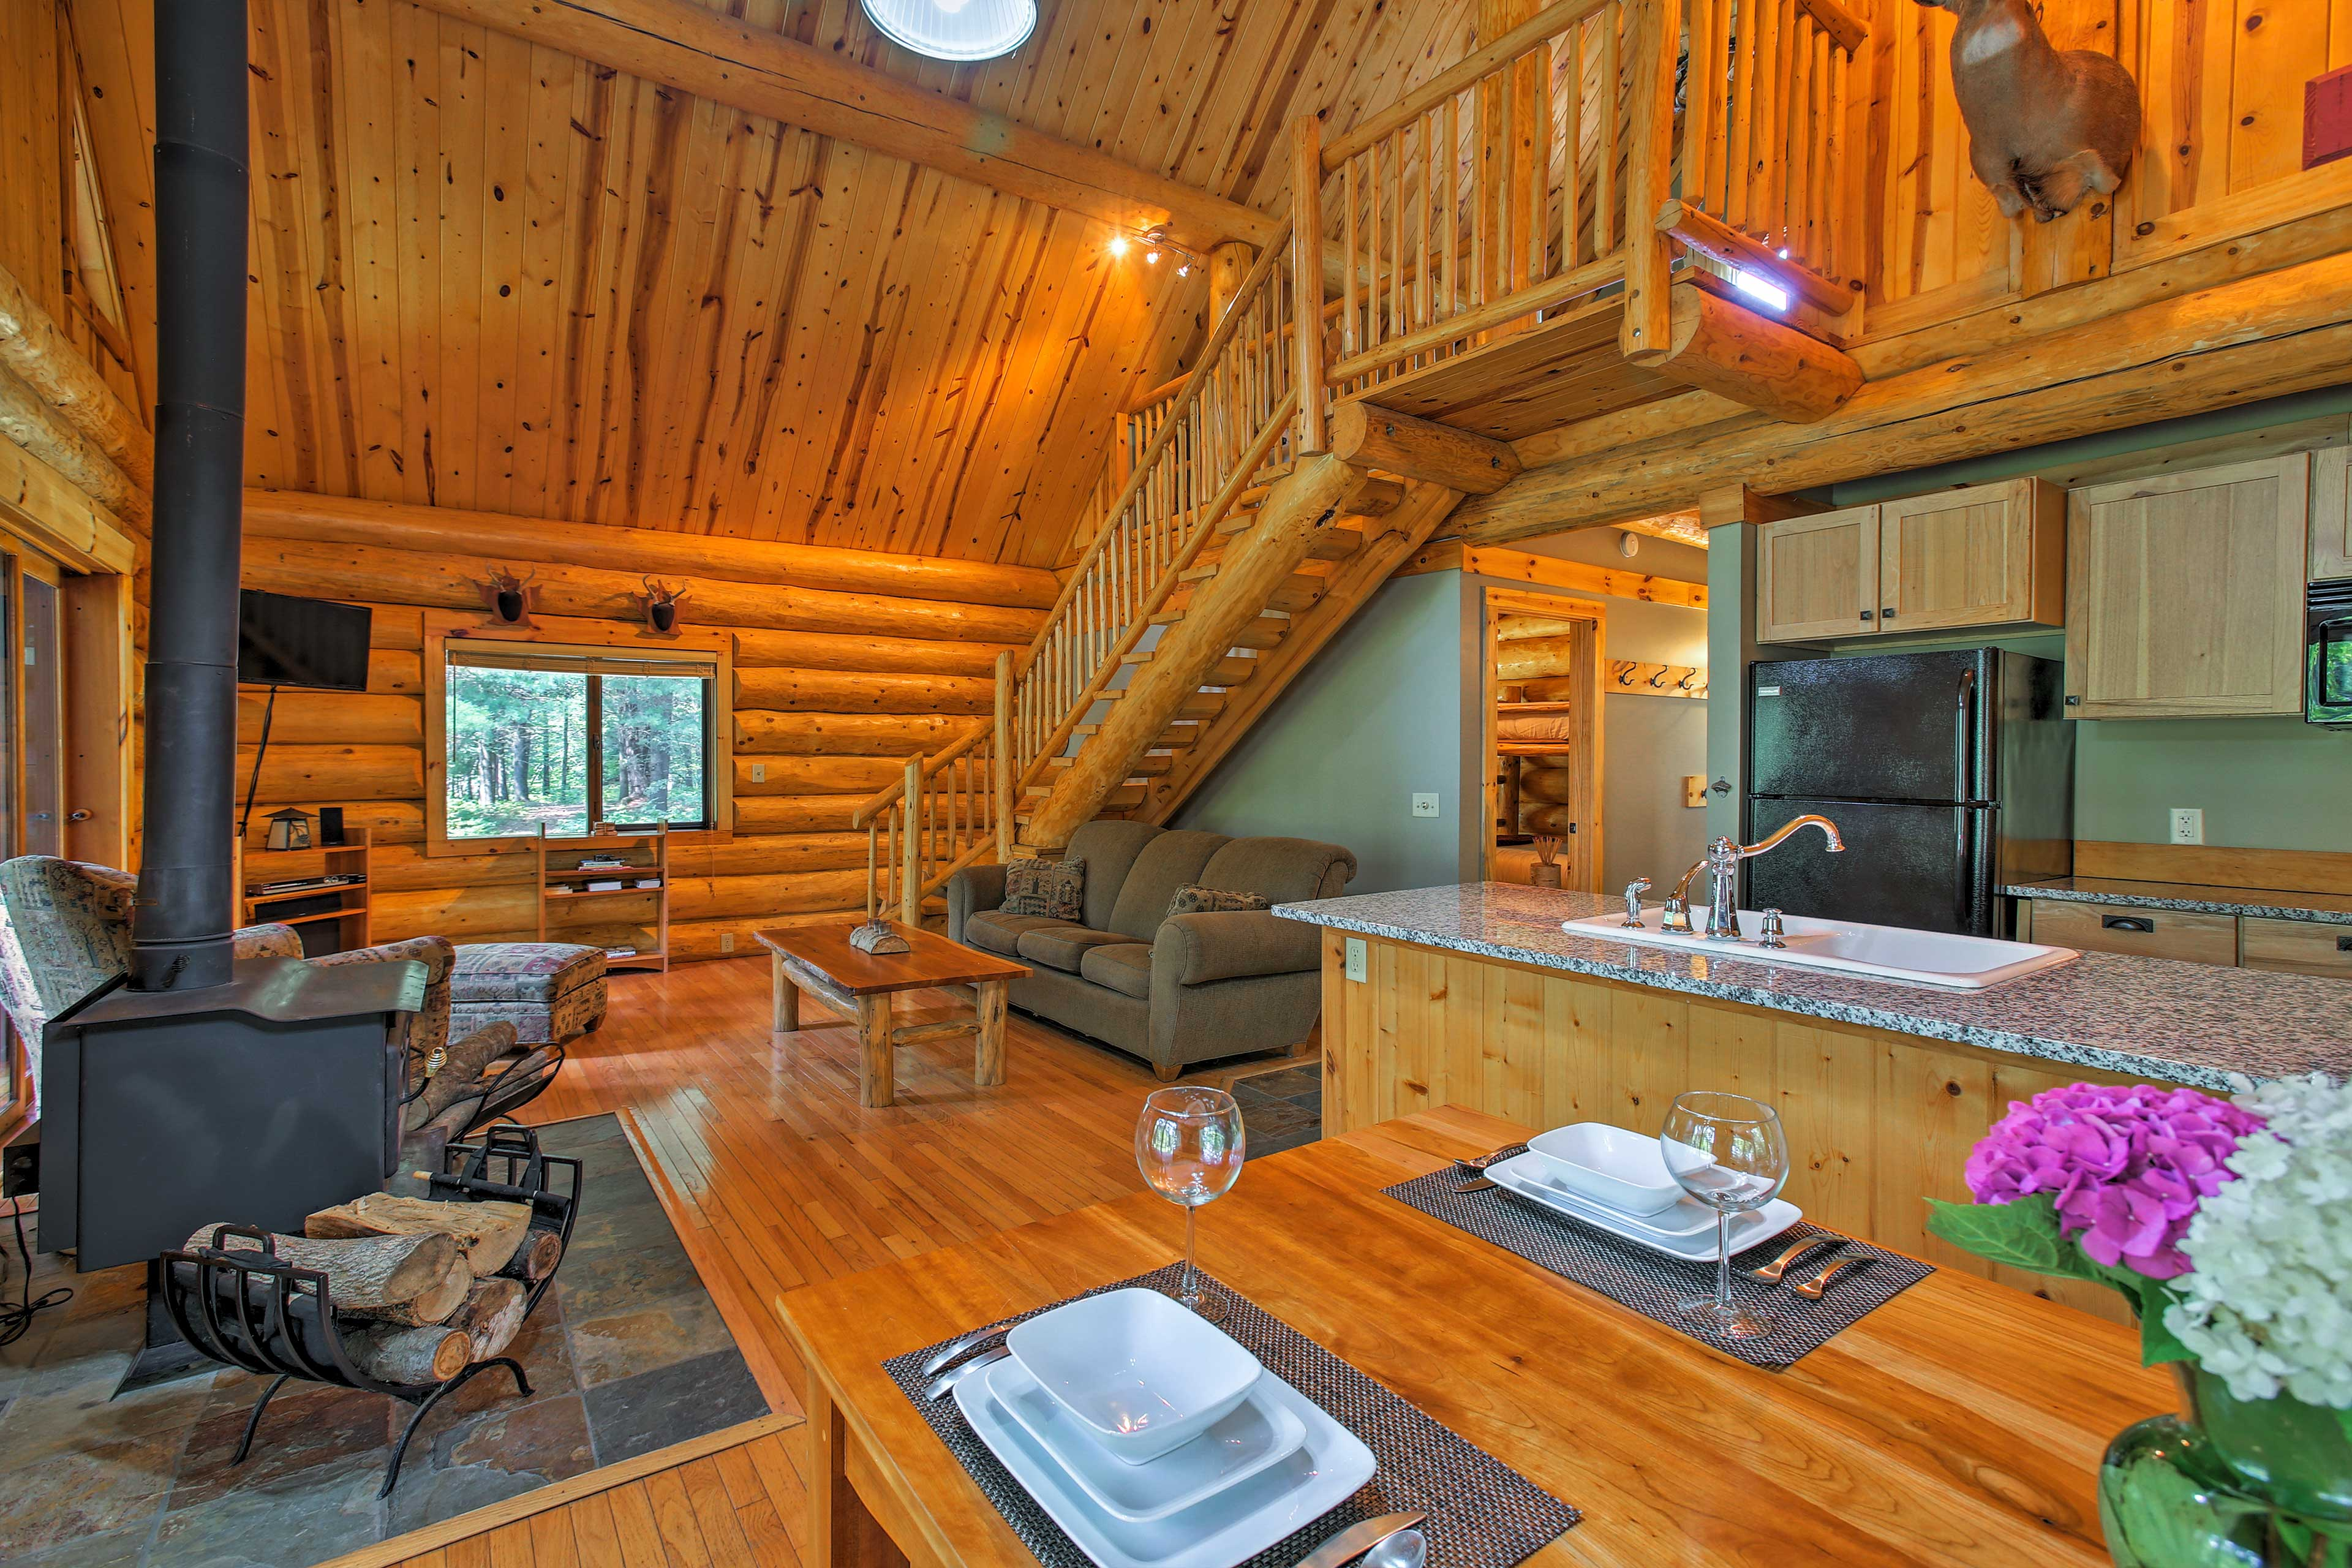 The living room features a gorgeous vaulted ceiling with an exposed log beam.